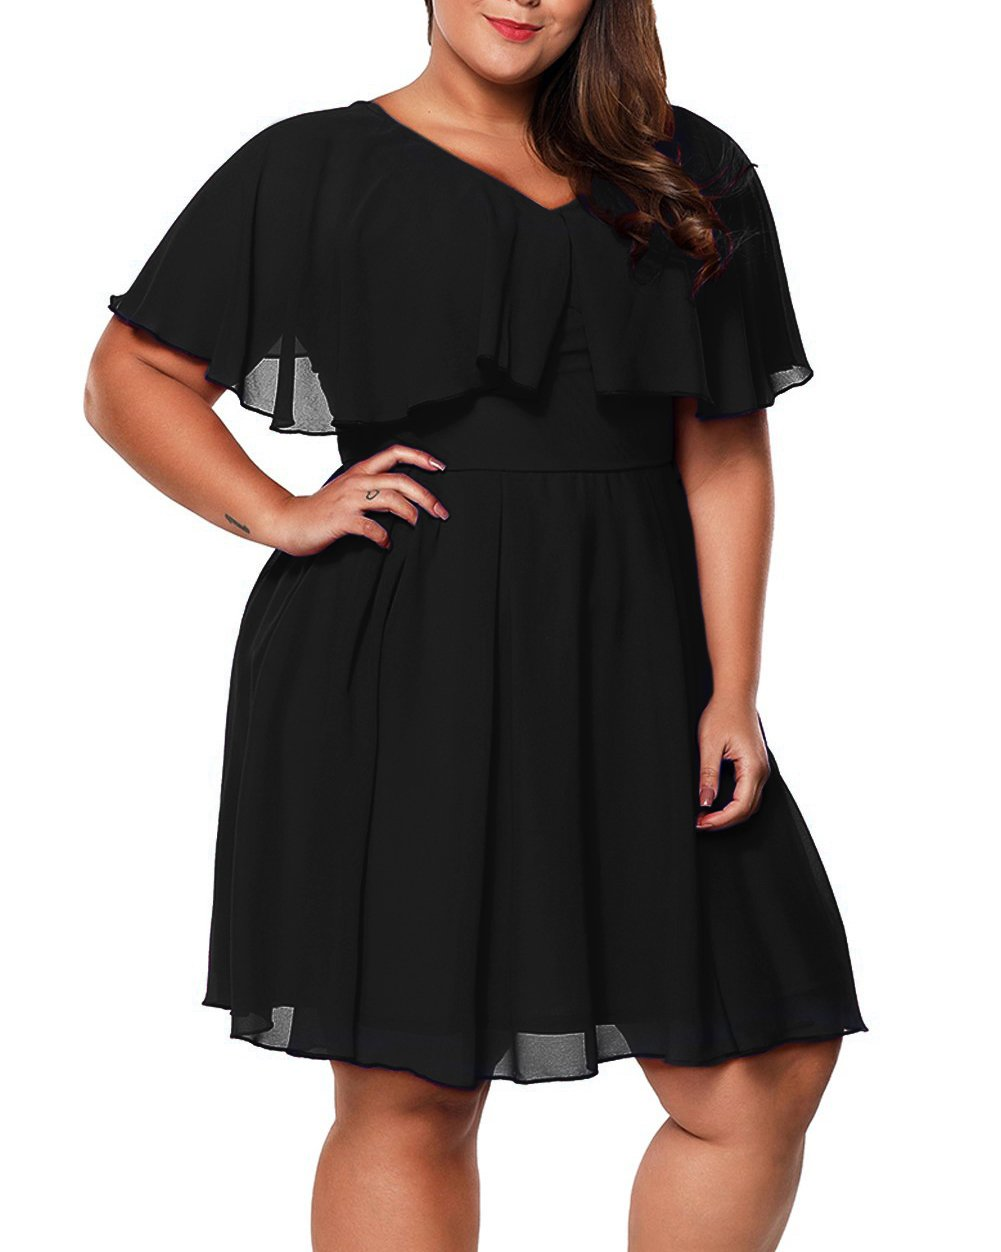 Rotita Women Ruffle Plus Size A Line Dress Sexy V Neck Pleated Fit and Flare Midi Dress